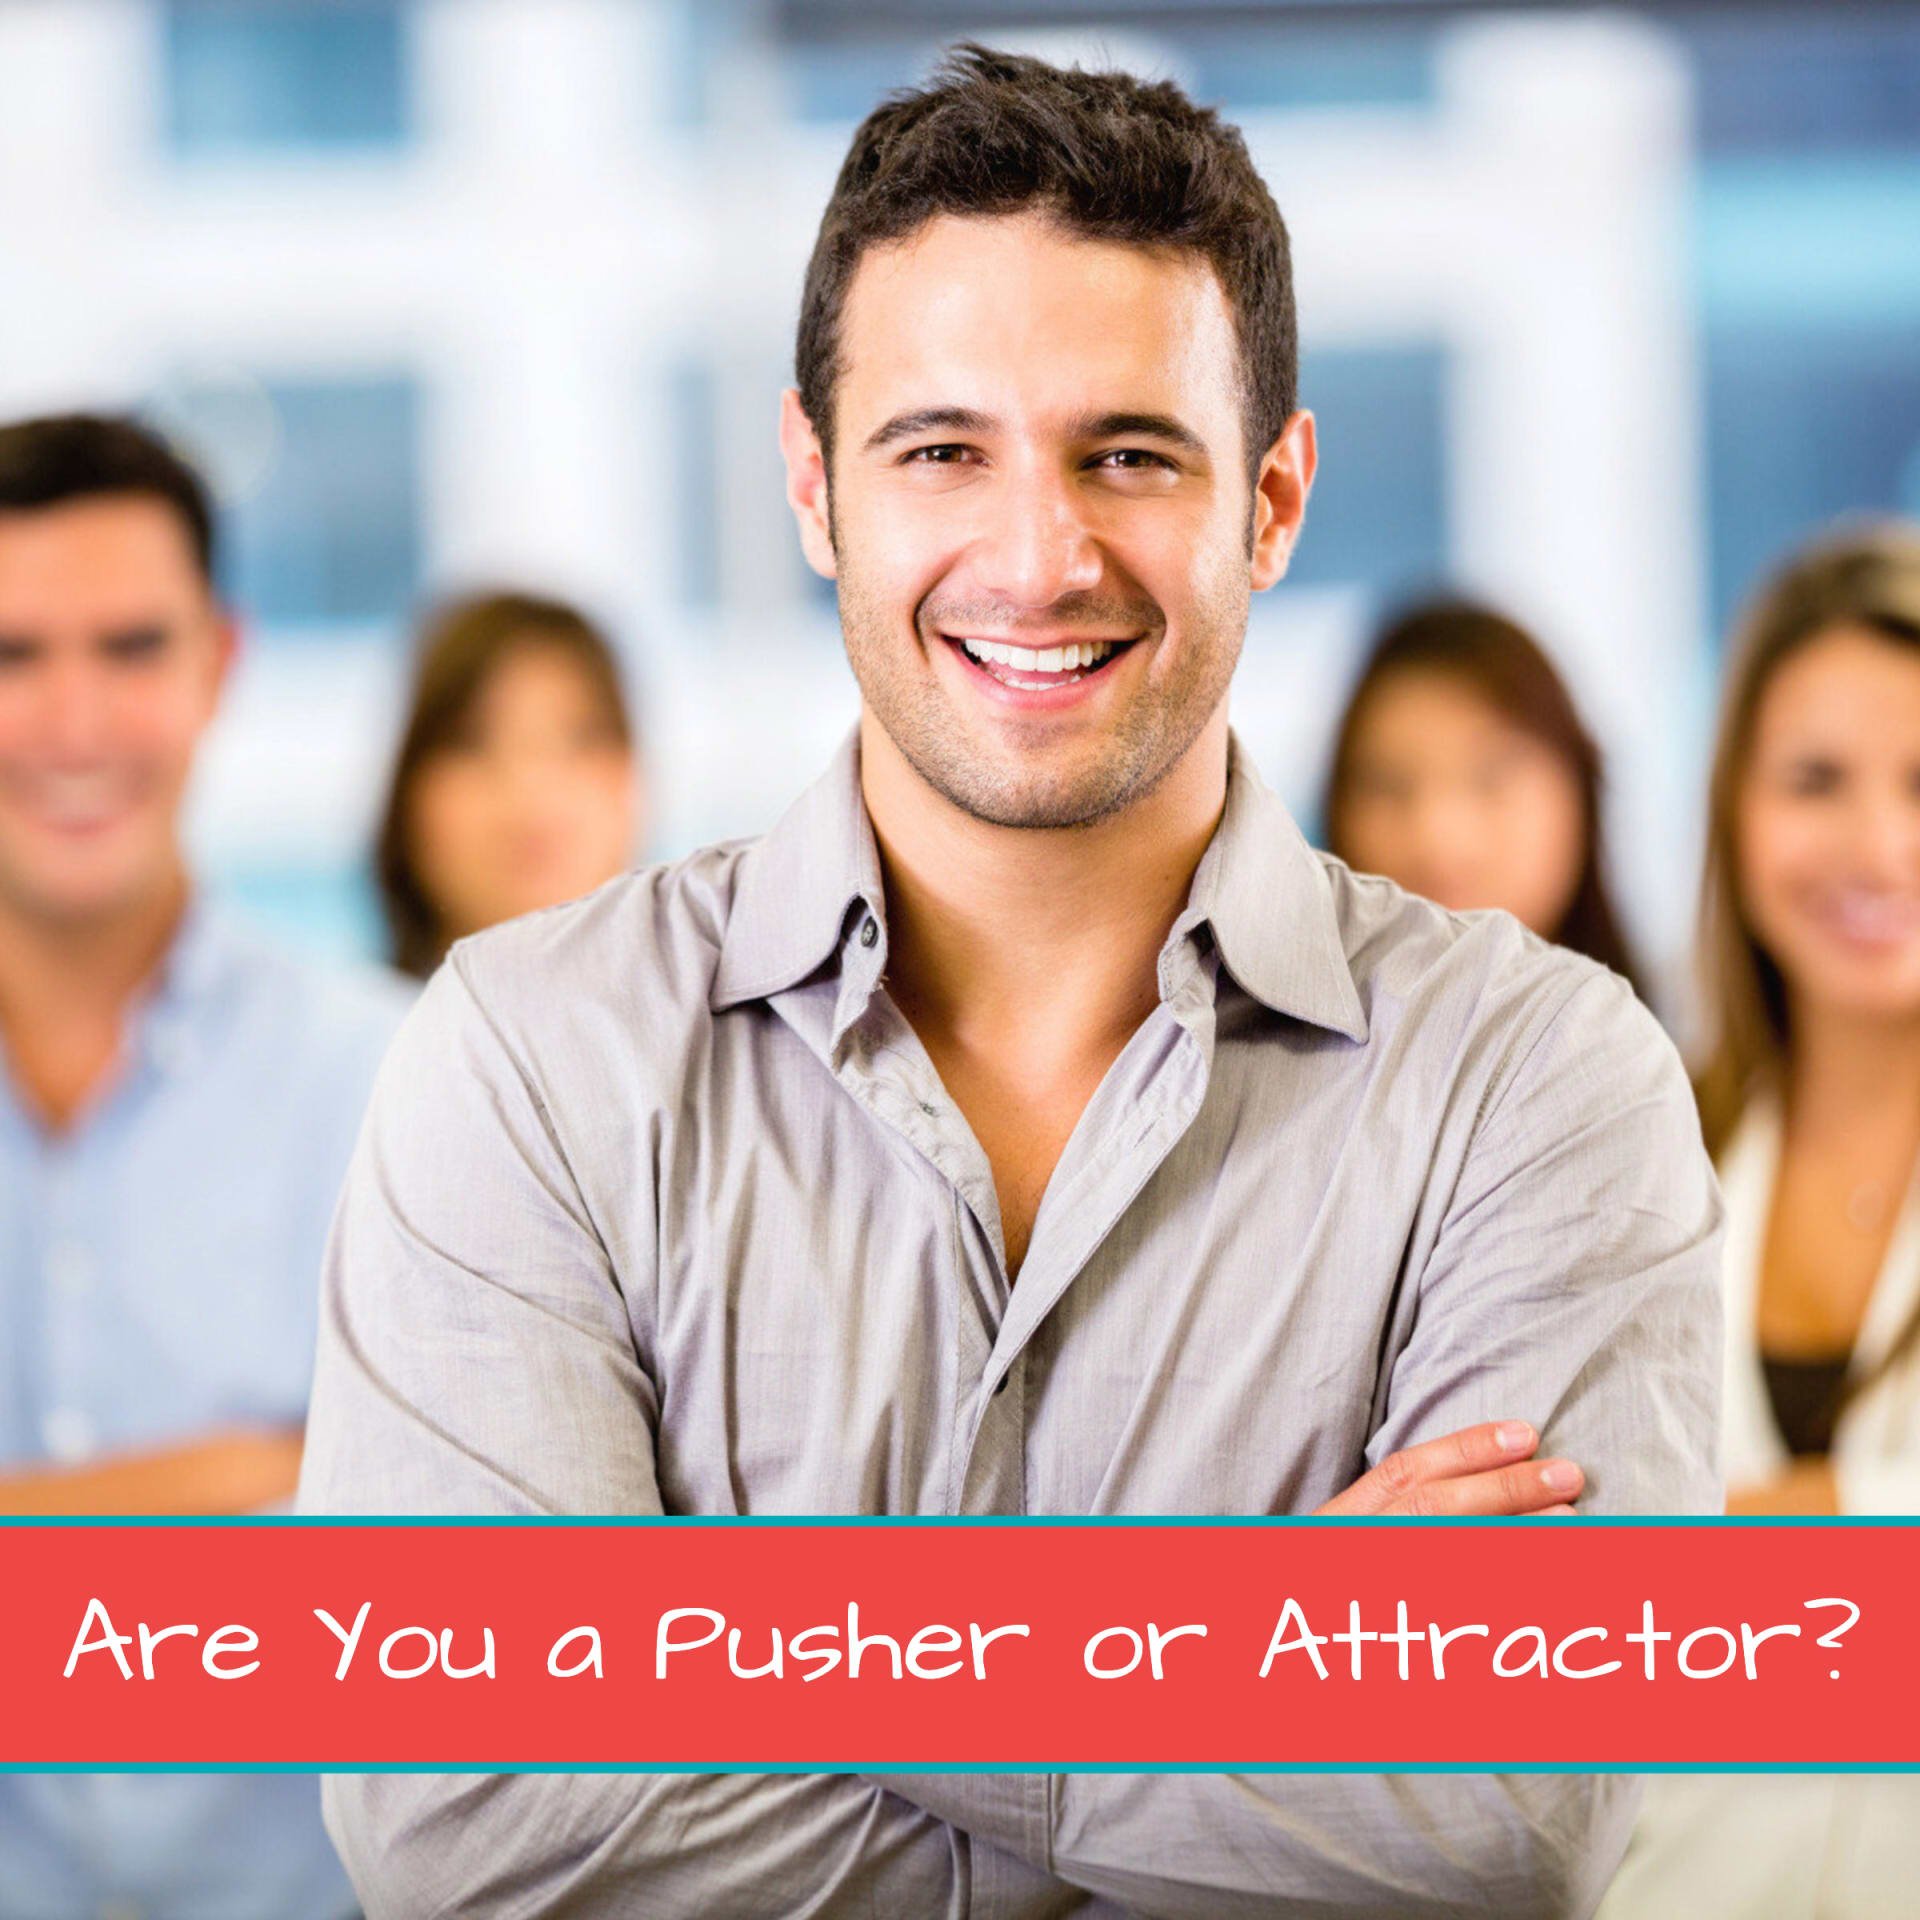 Are You a Pusher or Attractor? 1200 x 1200